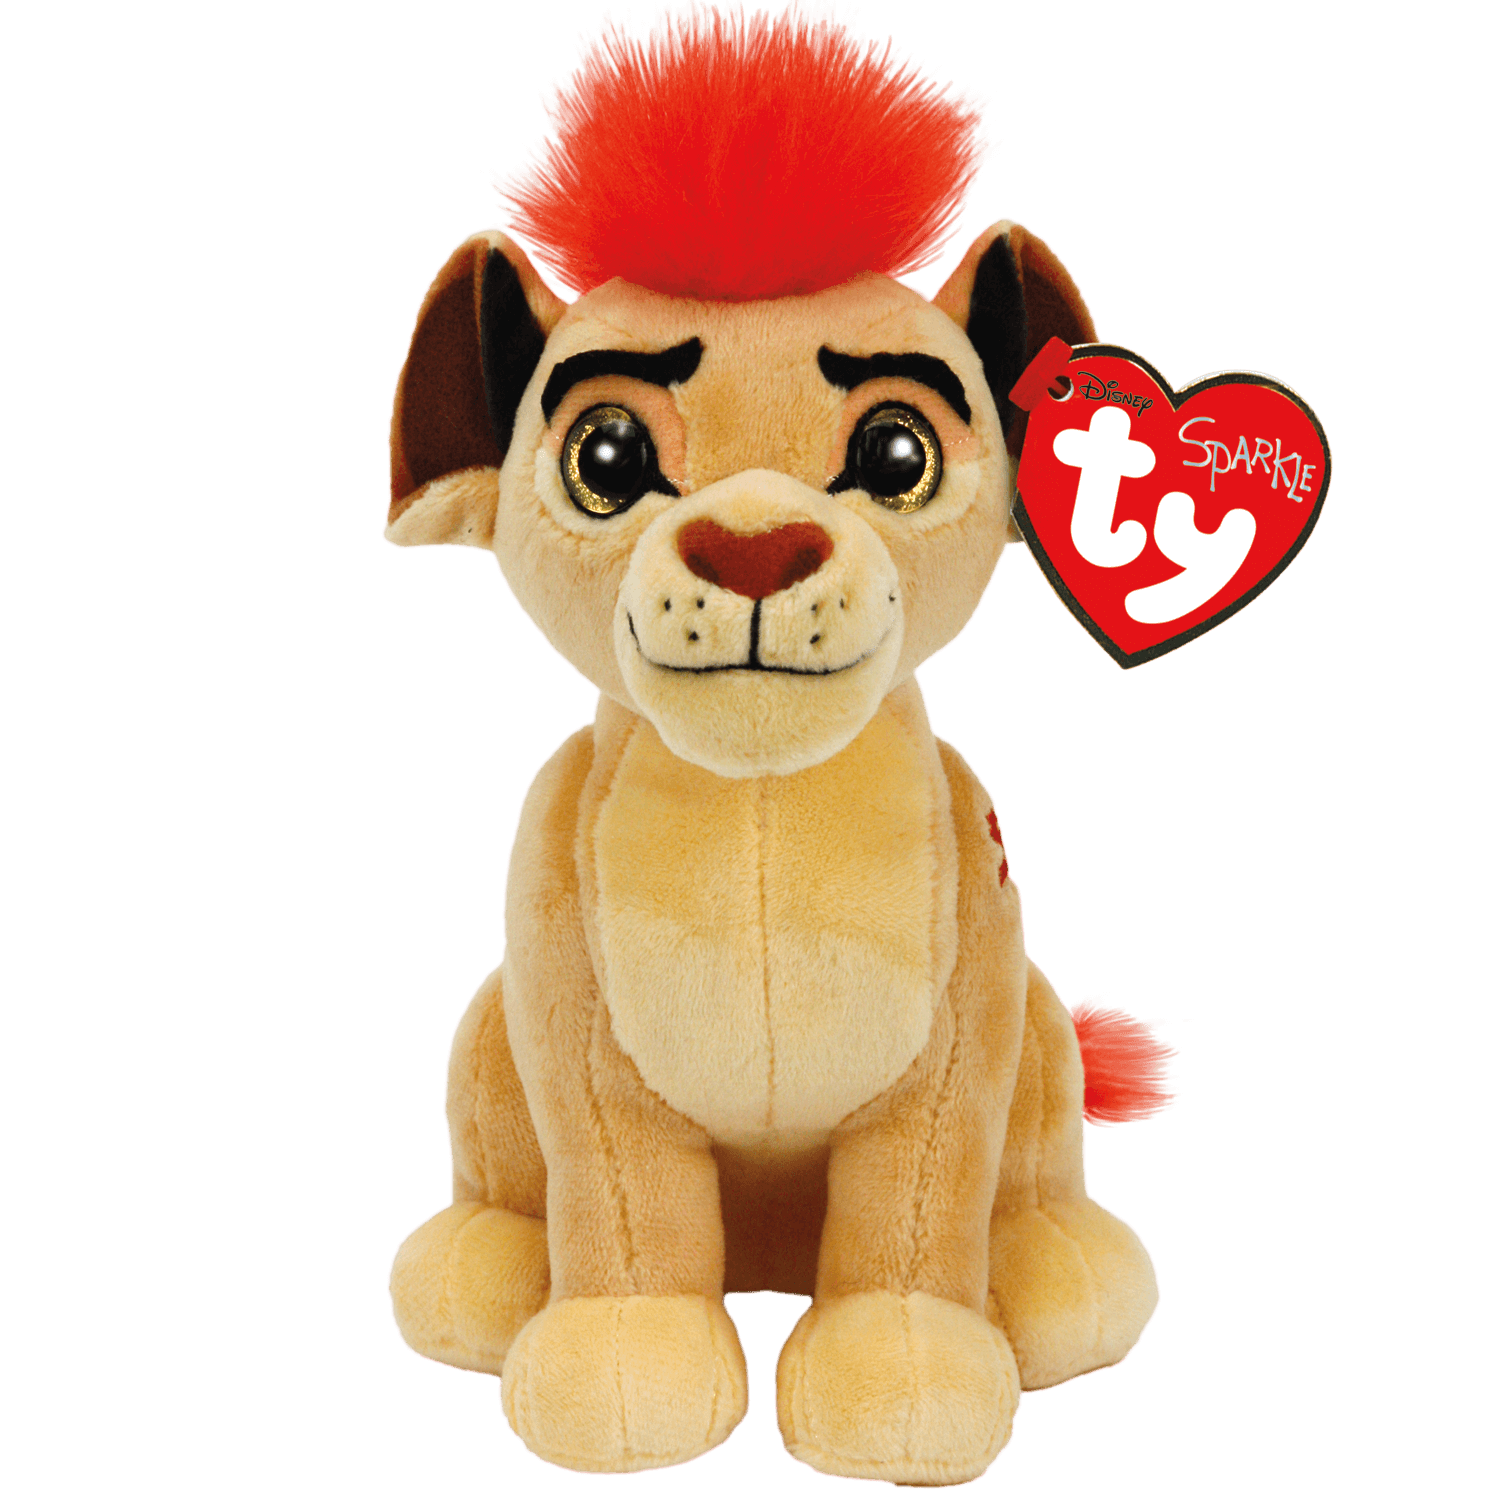 Kion - Lion From Lion Guard